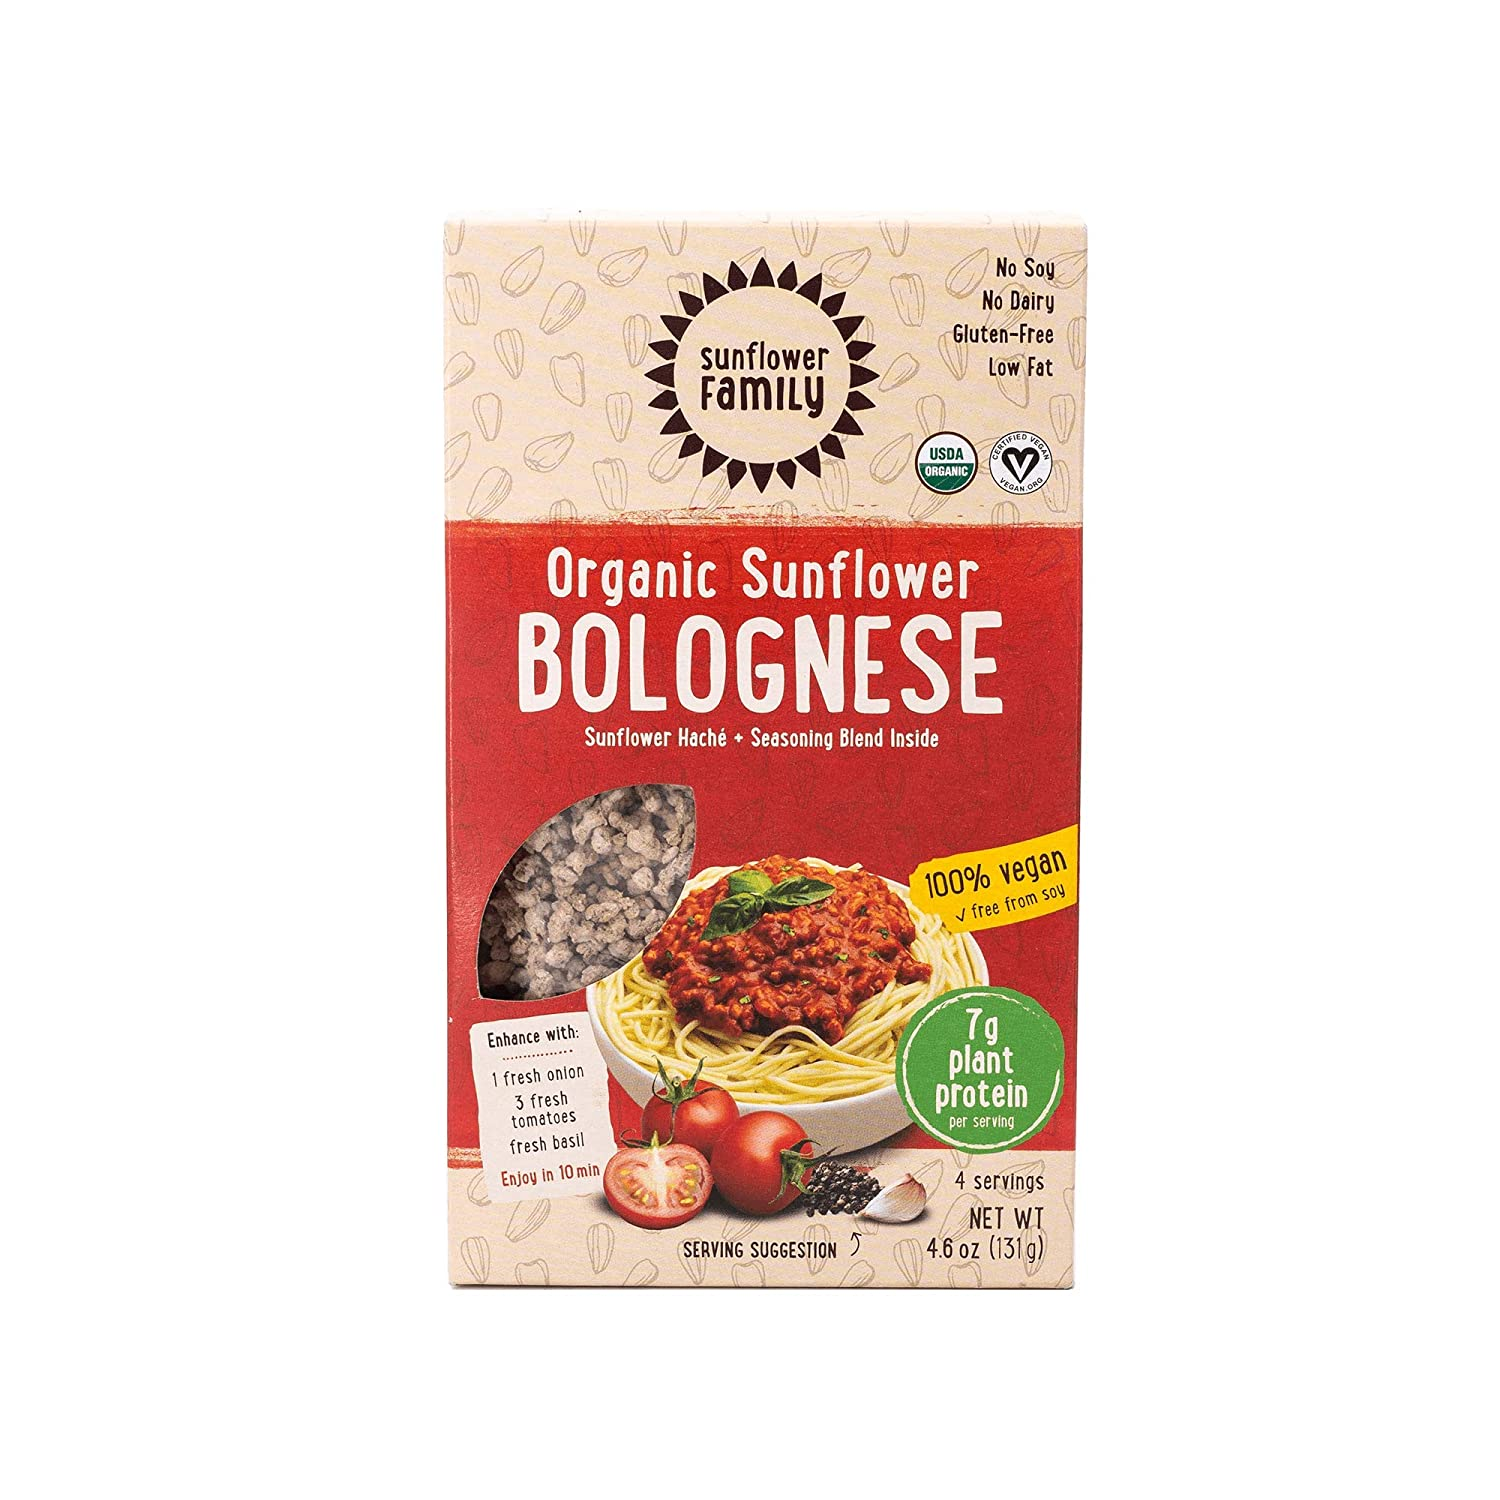 SunflowerFamily Organic Sunflower Bolognese - Plant Based Meat Alternative Ready-To-Cook Meal Kit - Certified USDA Organic, Certified Vegan, Kosher, ...